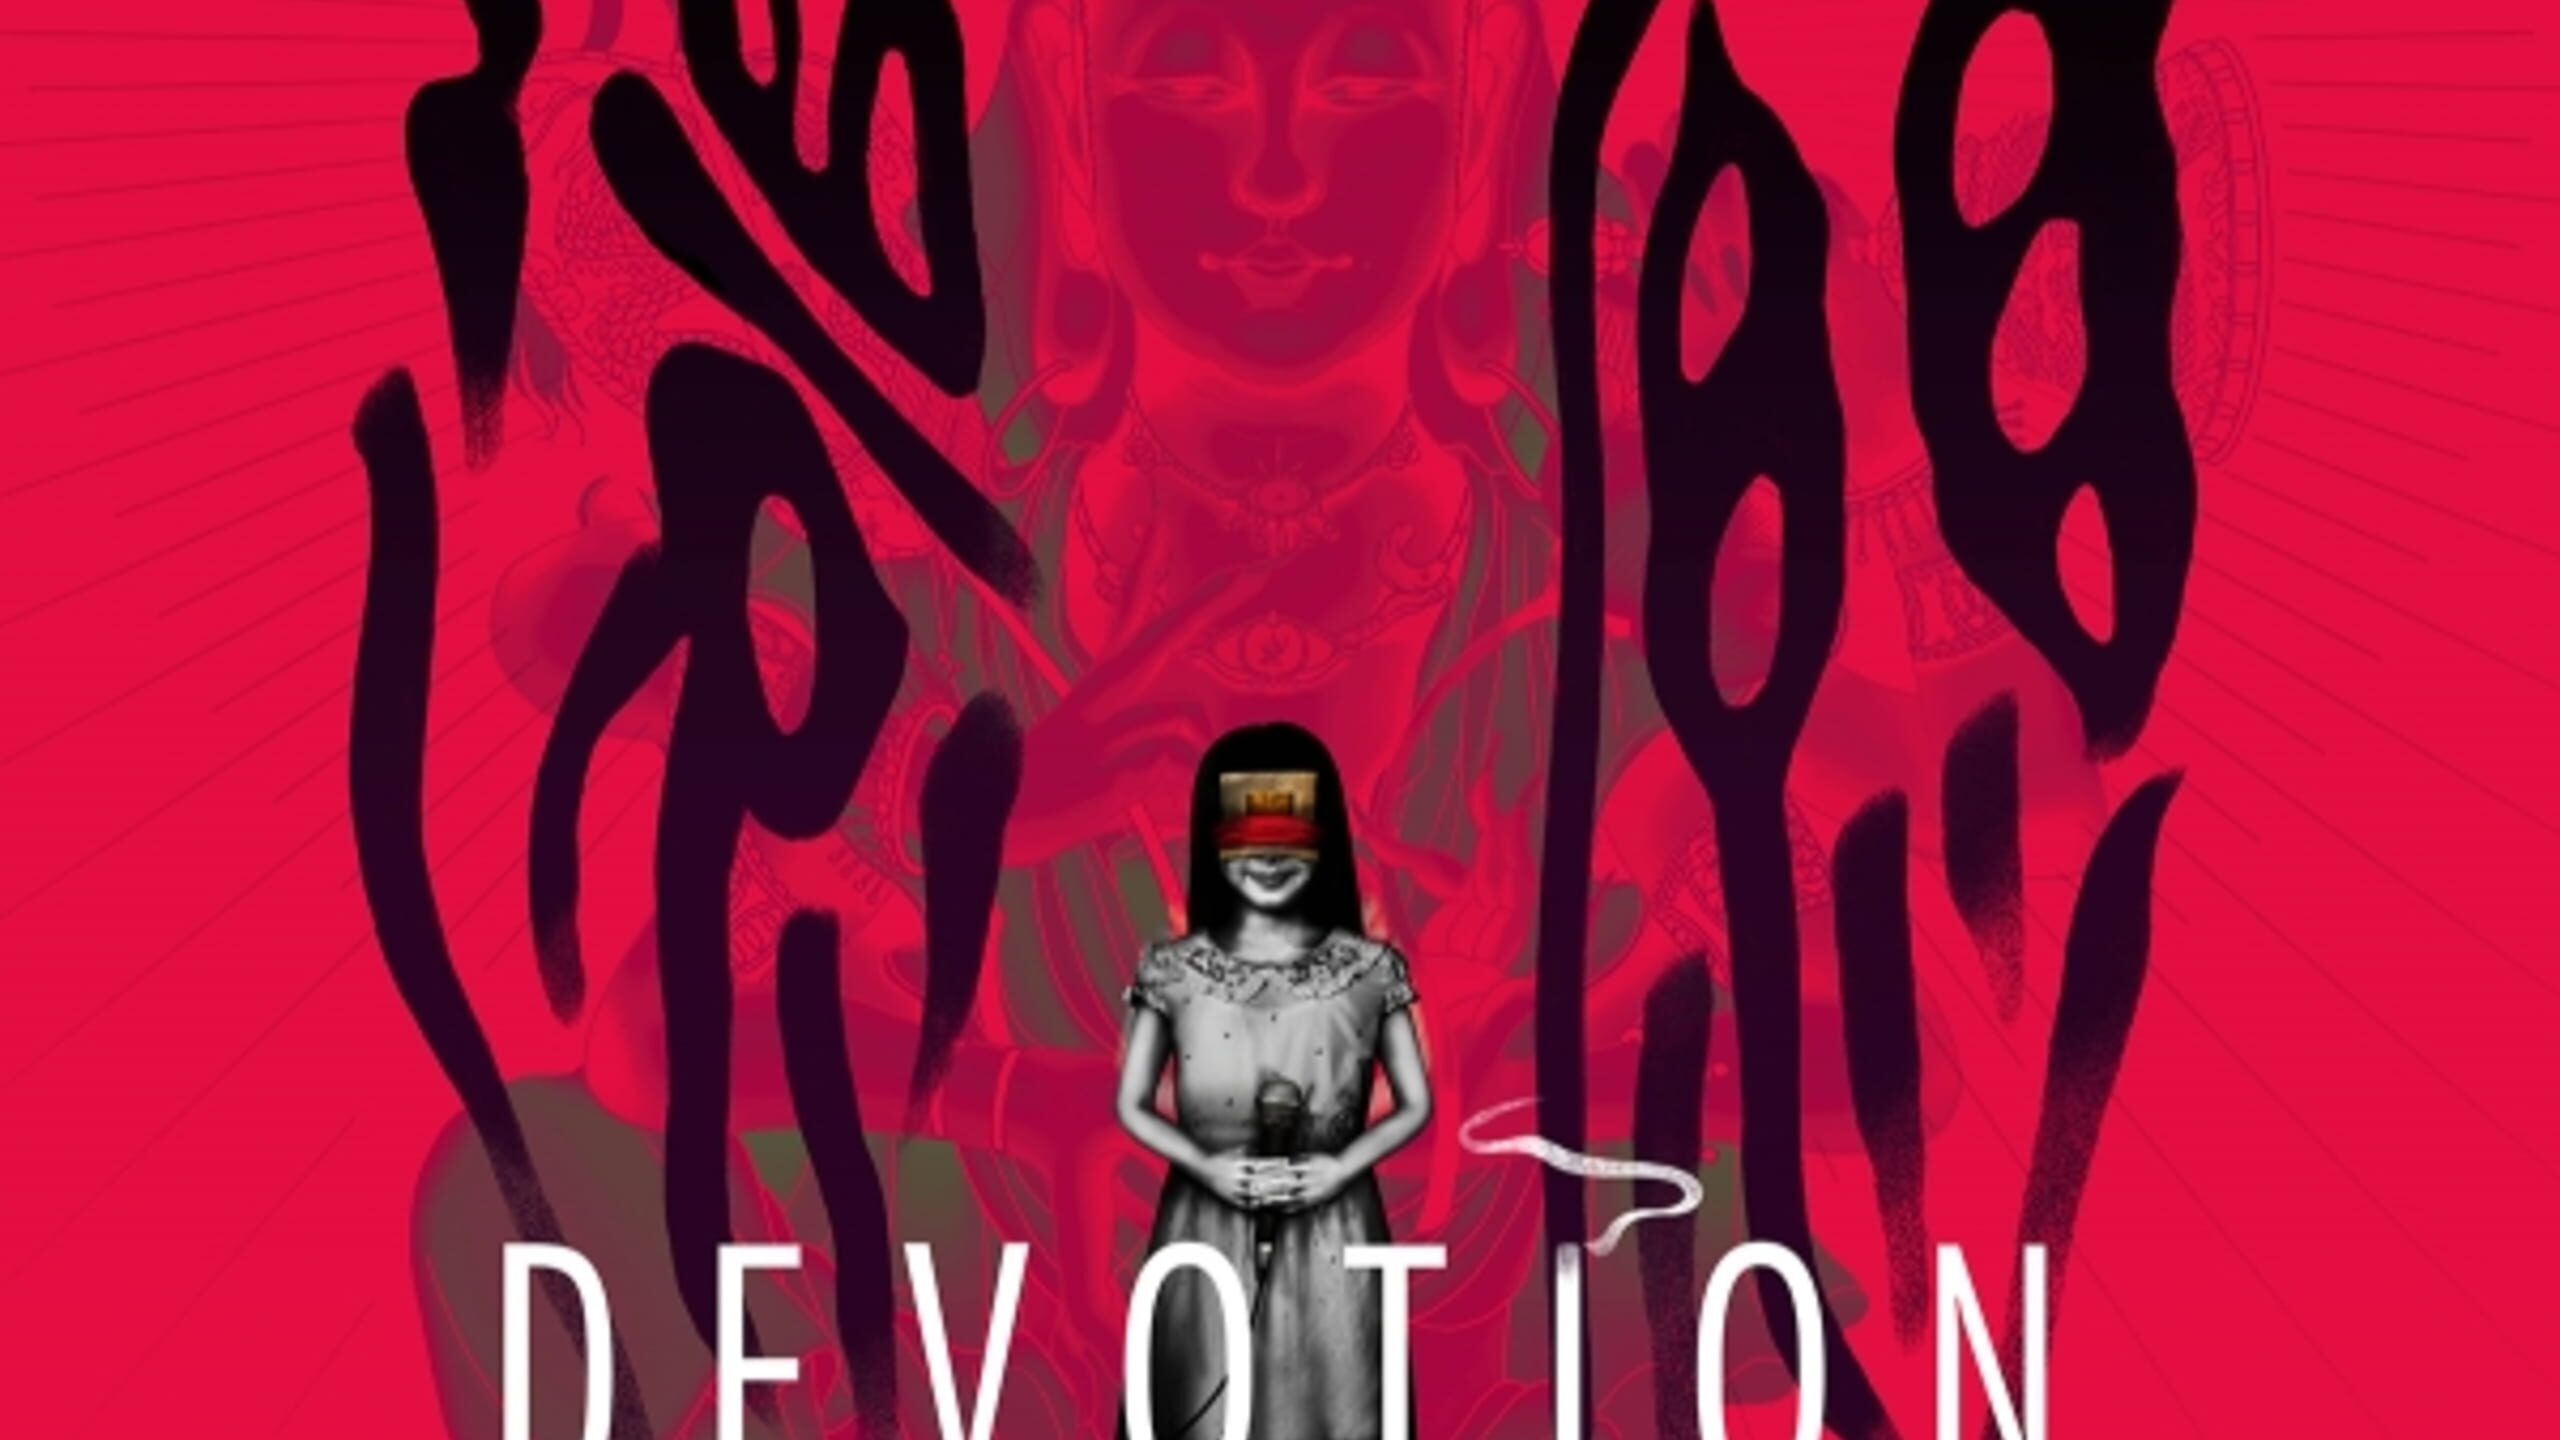 game cover art for Devotion